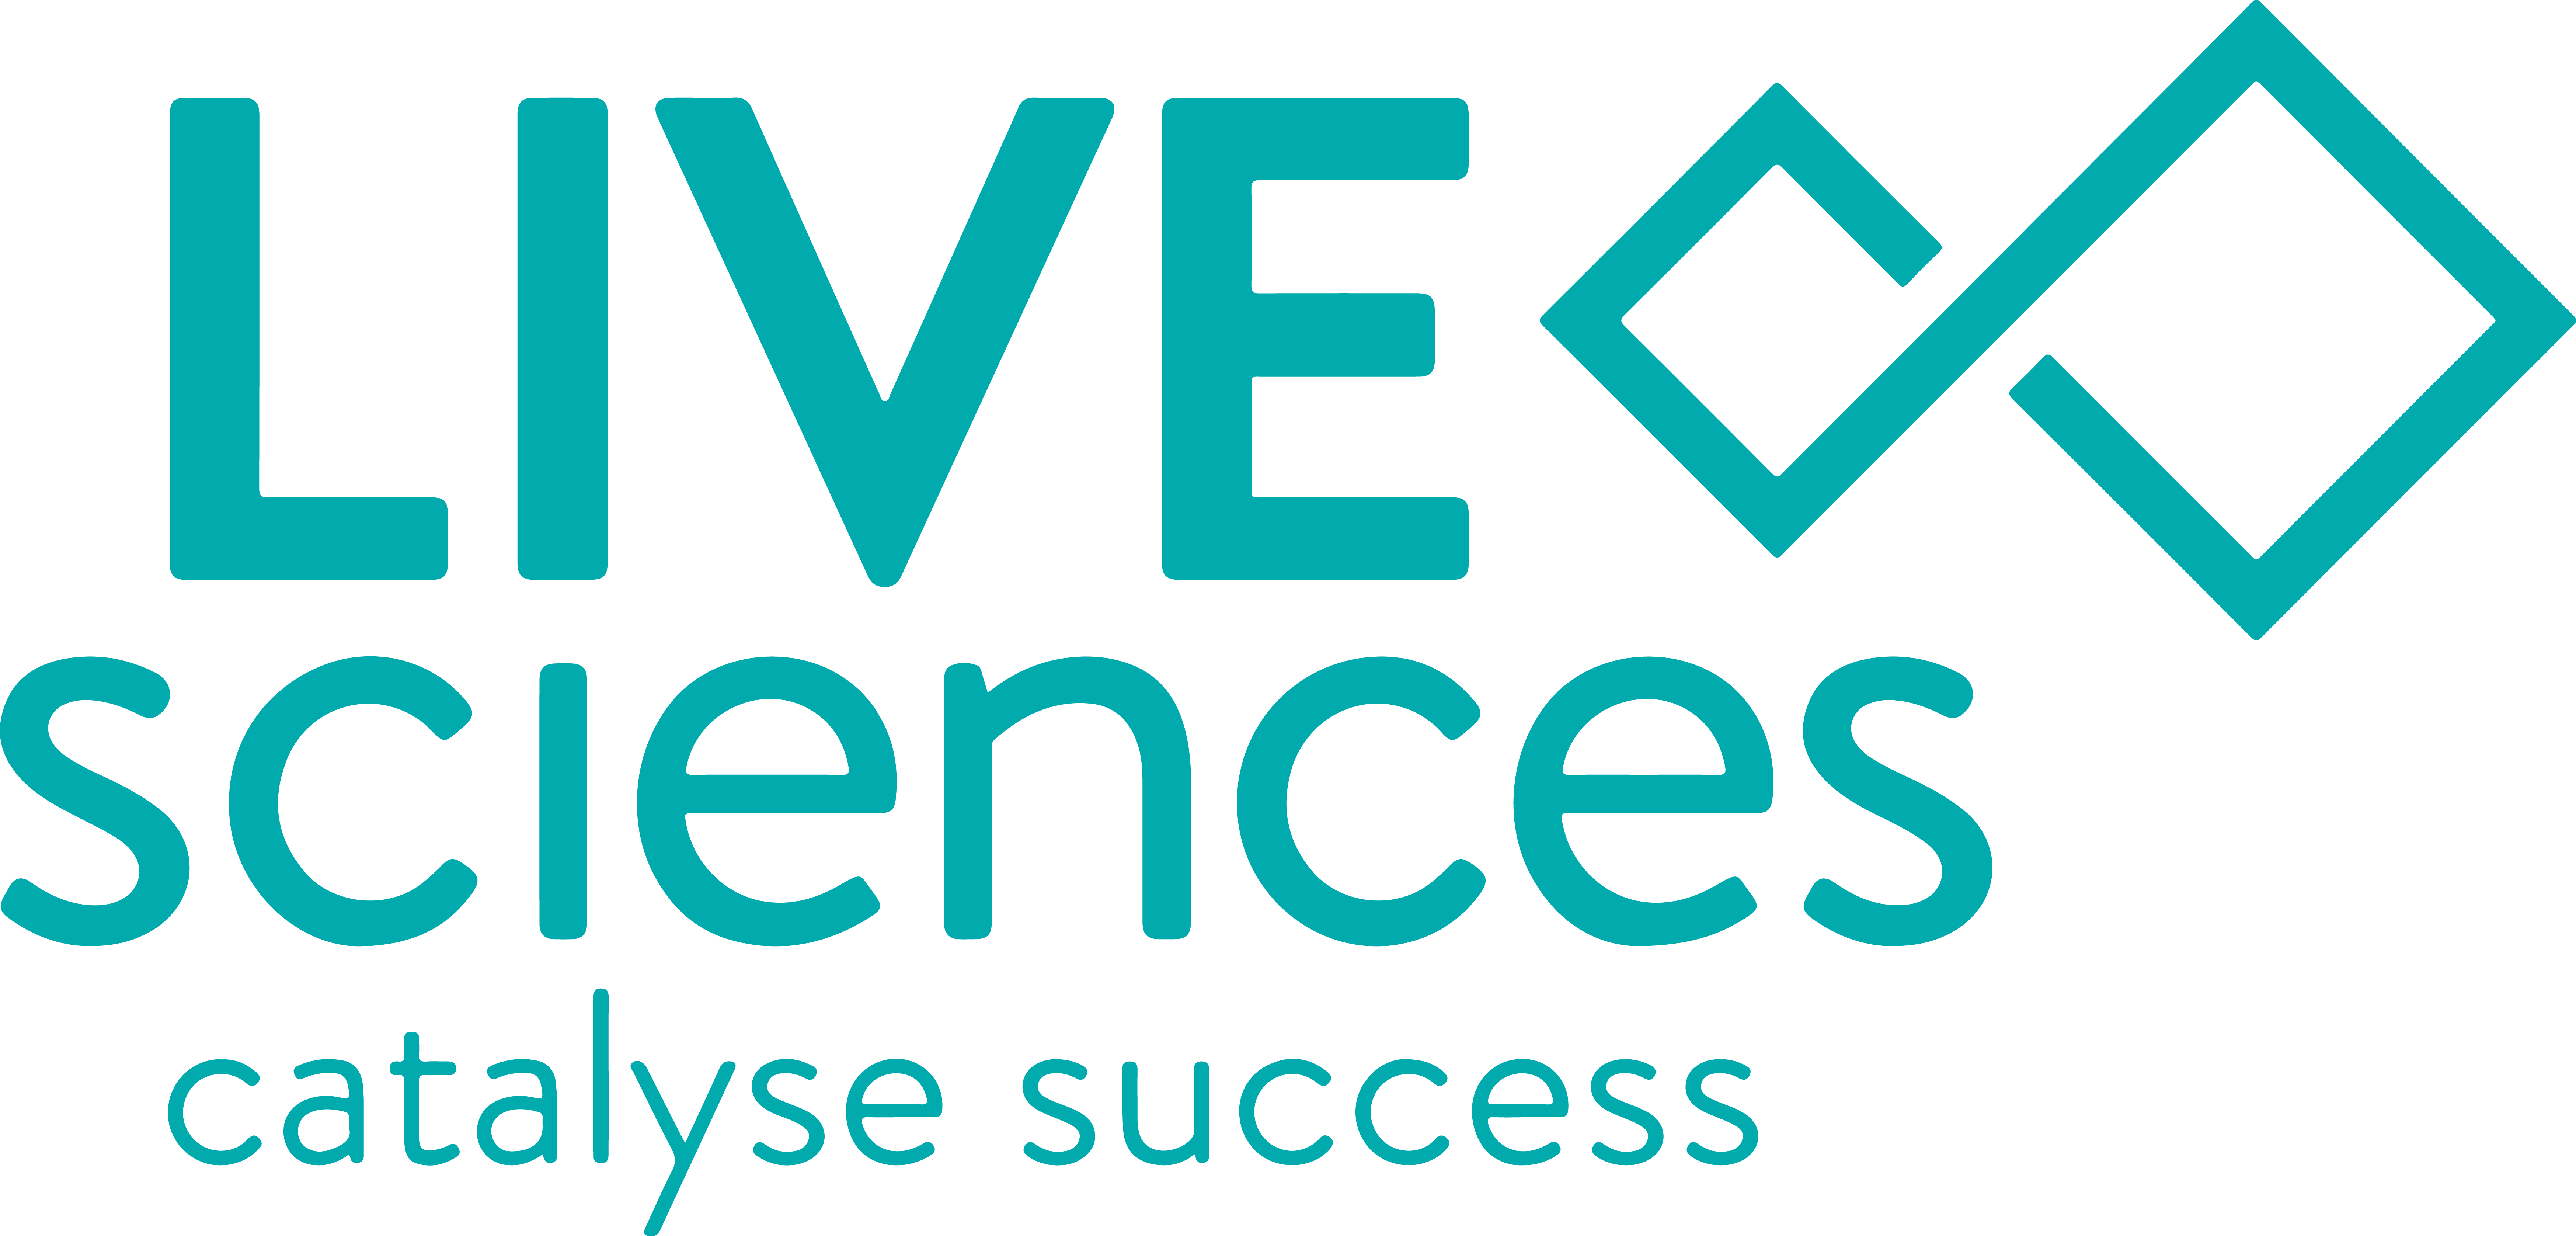 LIVEsciences